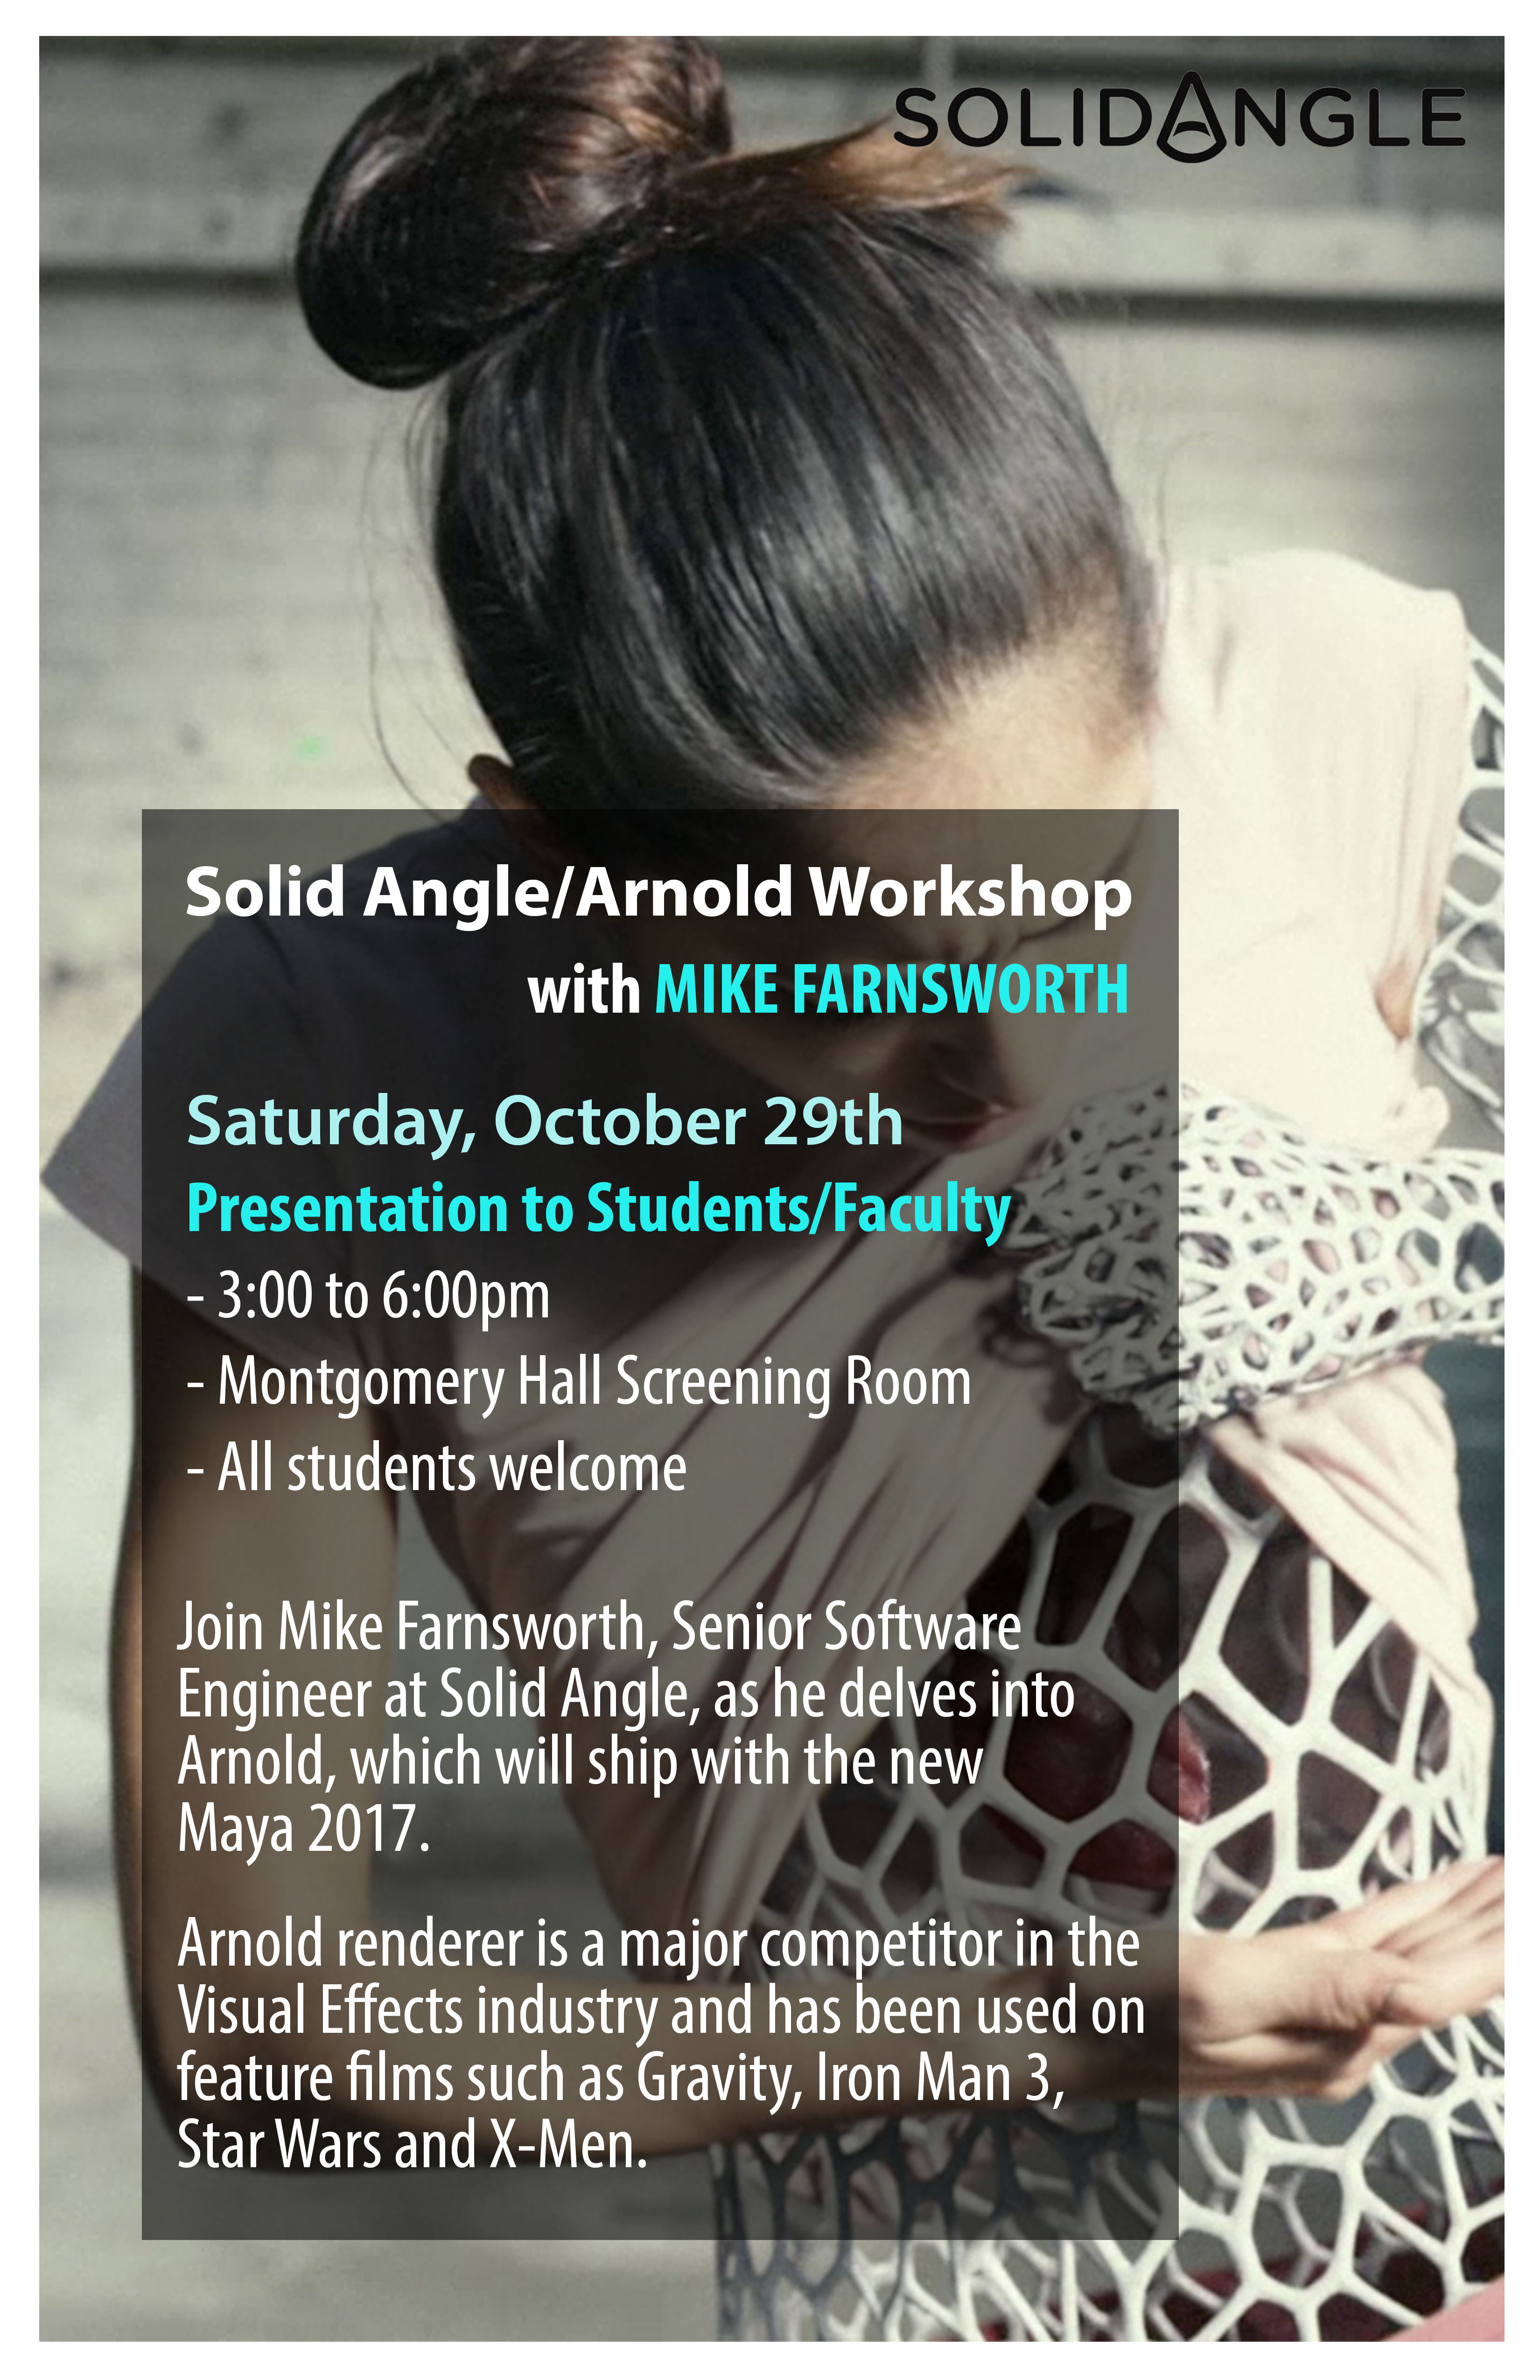 Solid Angle/Arnold Workshop with Mike Farnsworth